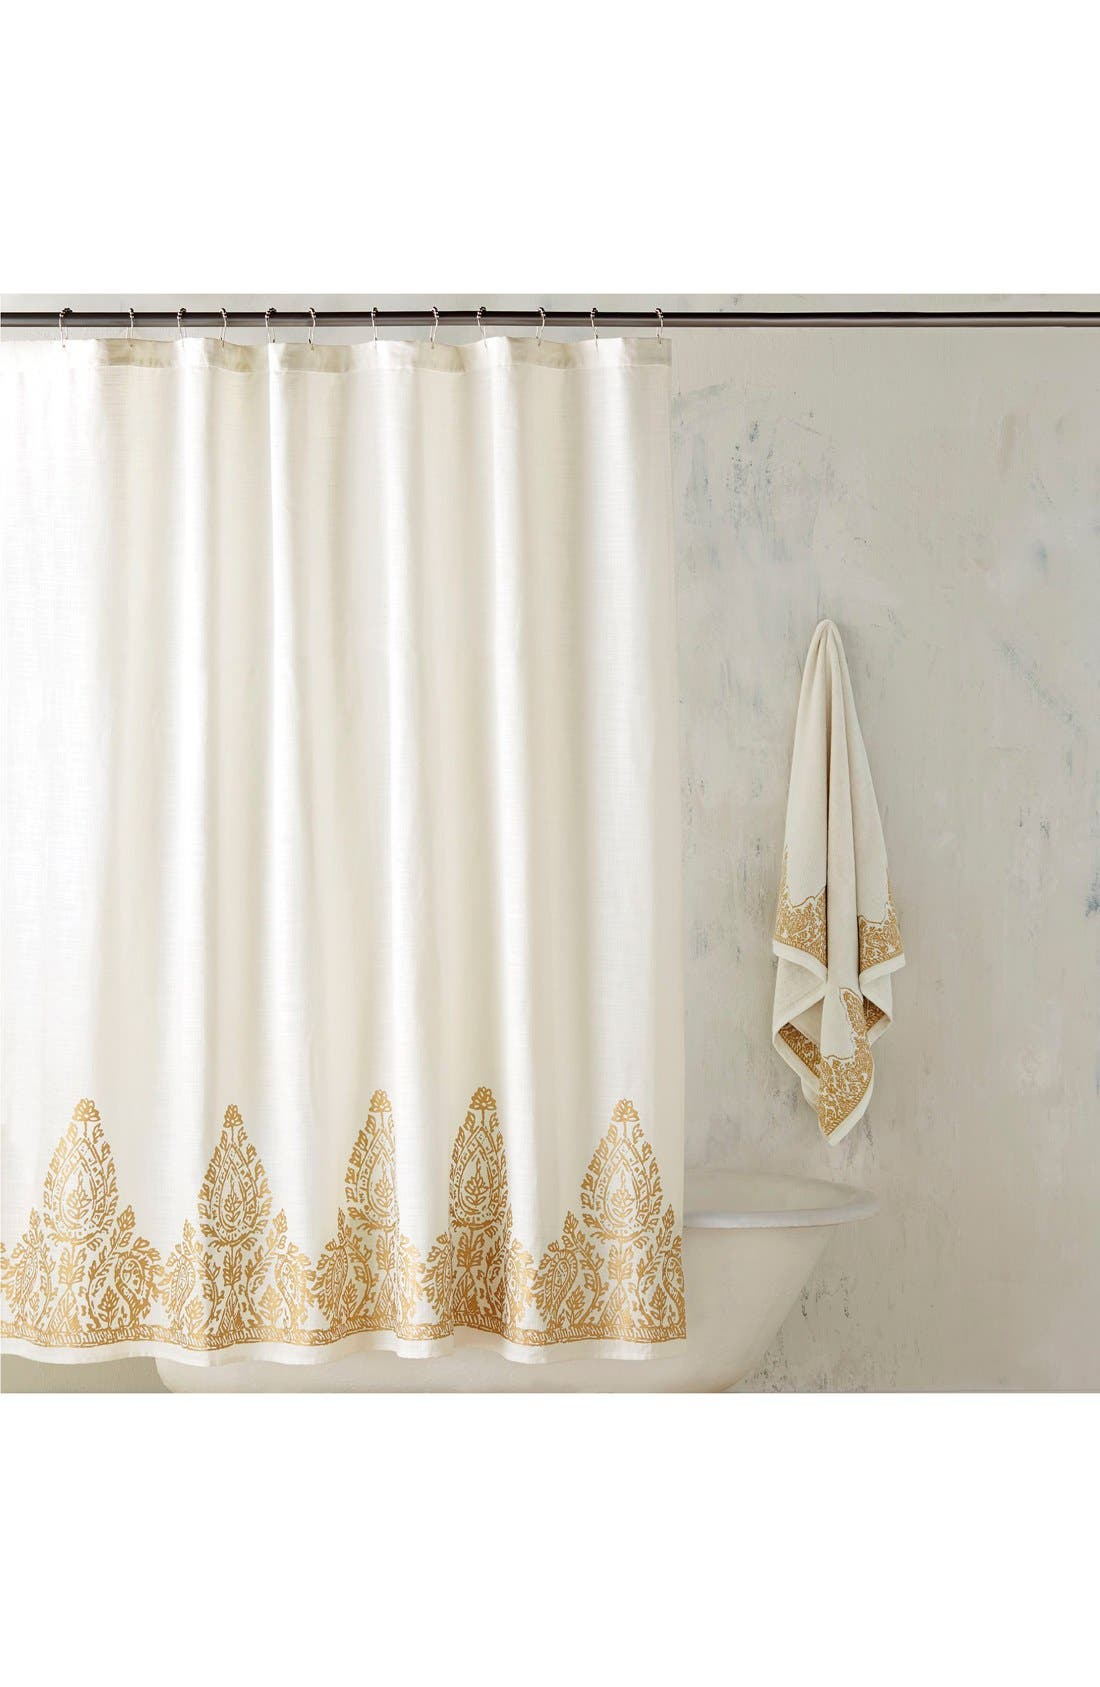 'Nadir' Shower Curtain,                         Main,                         color, White/ Gold